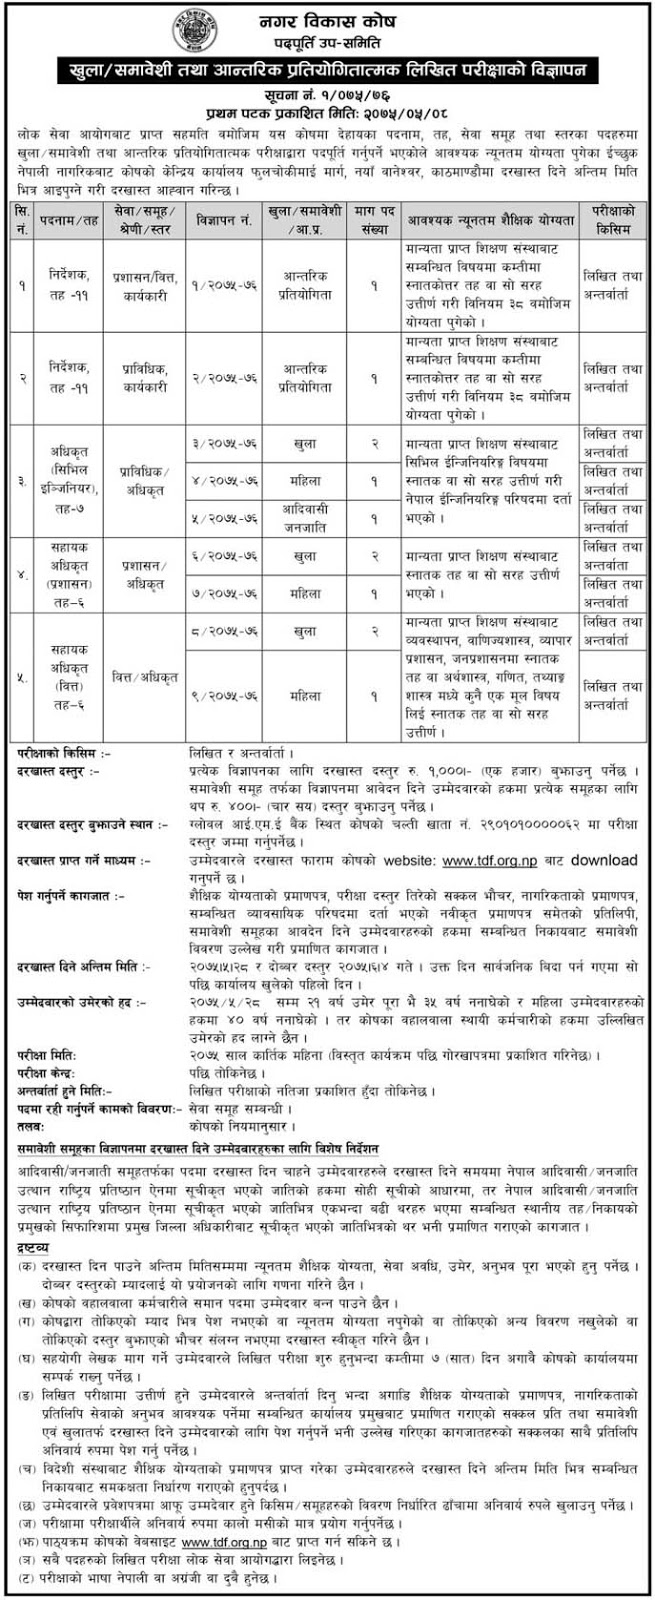 Vacancy Announcement, Town Development Fund for Various Post